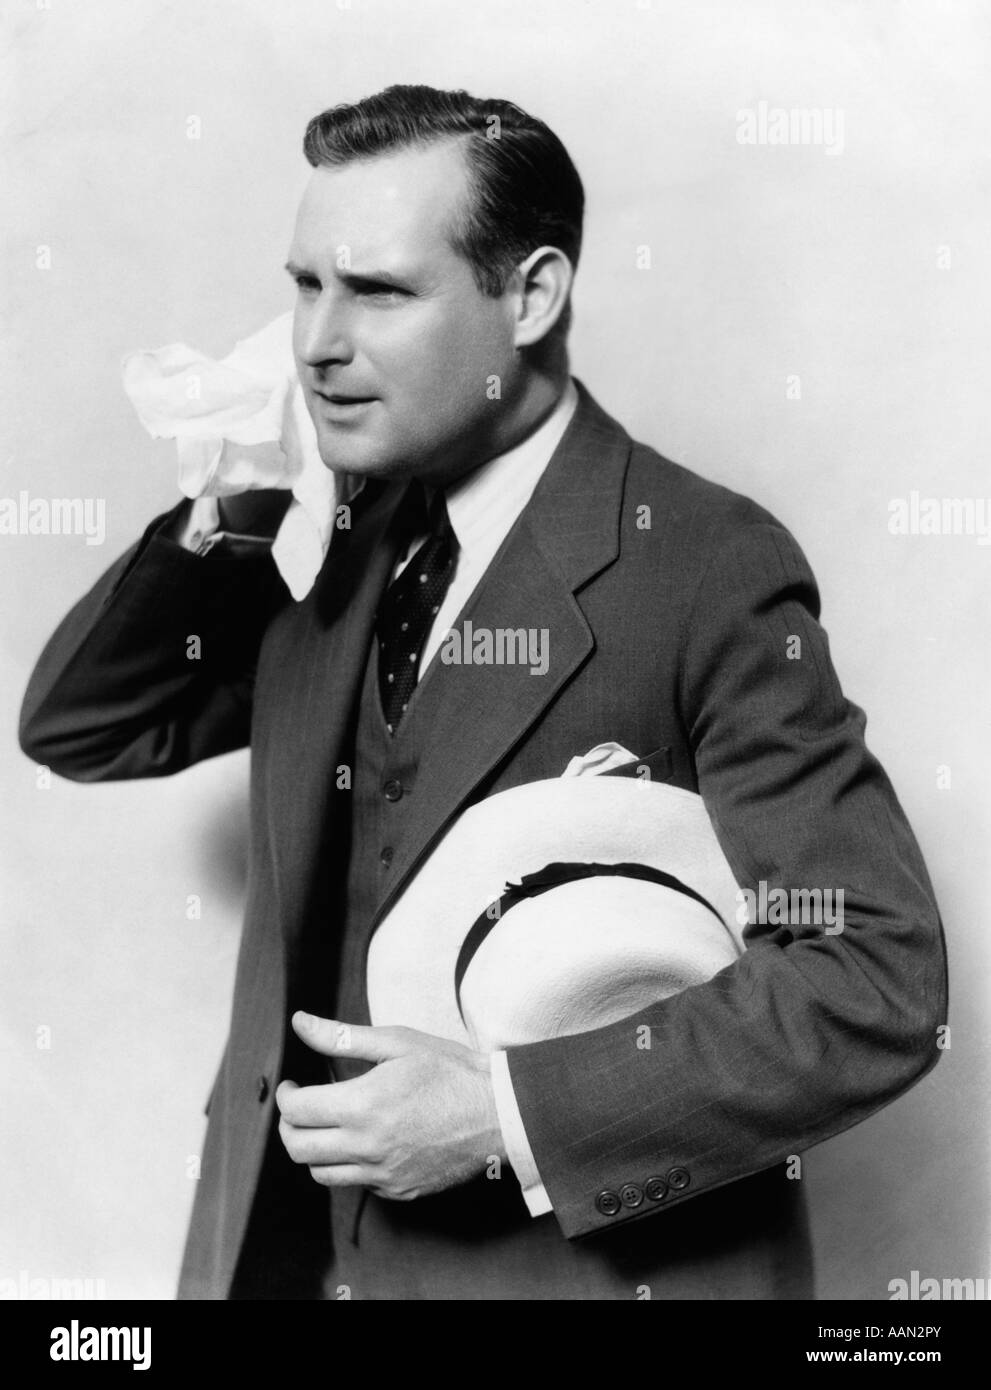 1930s MAN IN SUIT HOLDING HAT WIPING FACE WITH HANDKERCHIEF - Stock Image